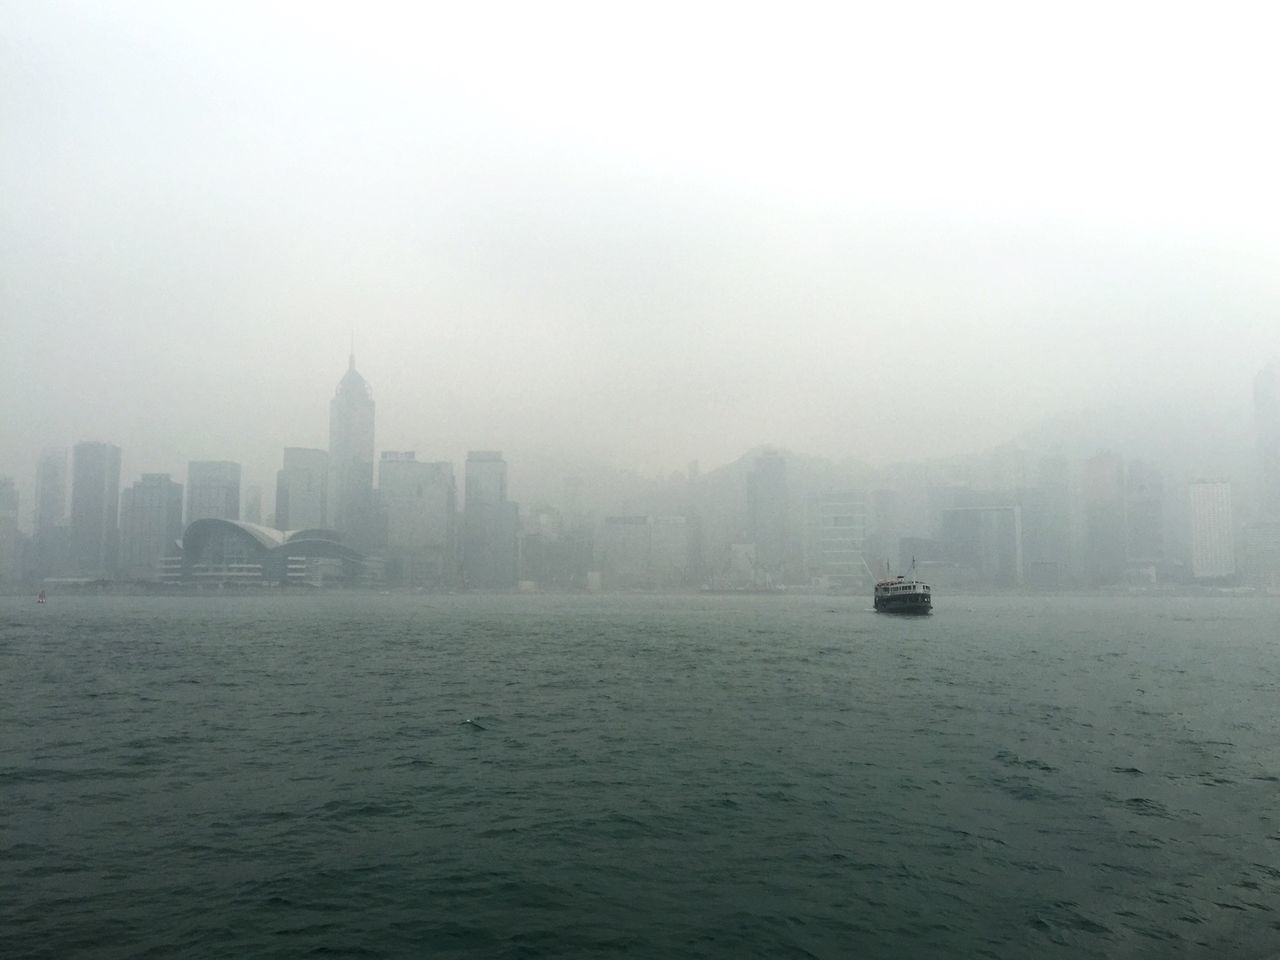 Scenic View Of Sea Against Sky In City During Foggy Weather